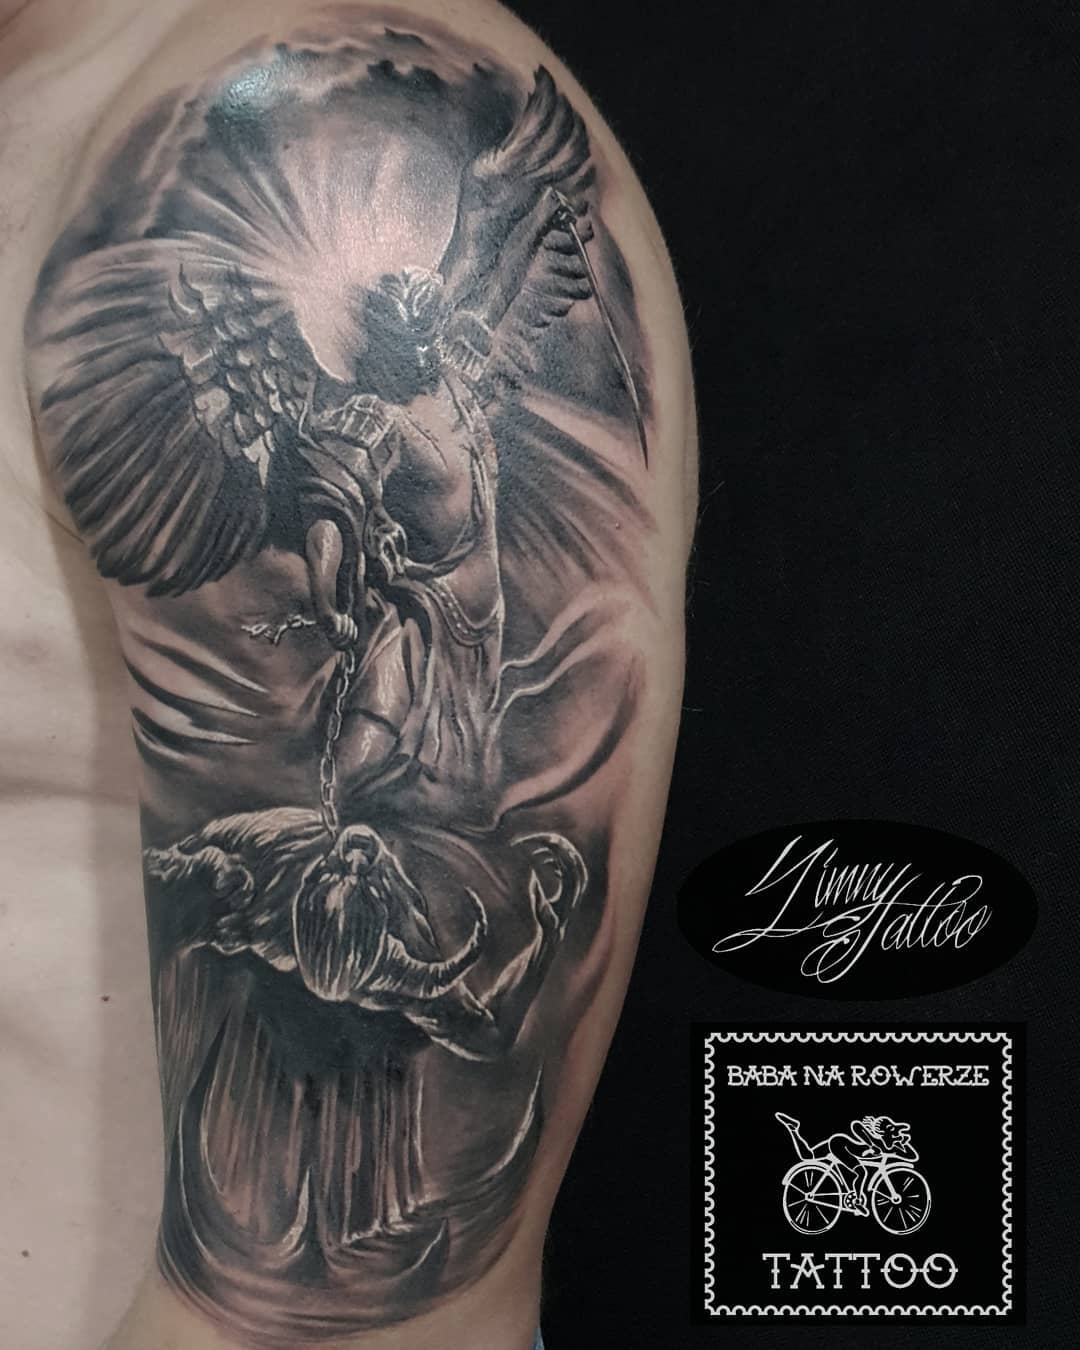 Zimny Tattoo inksearch tattoo